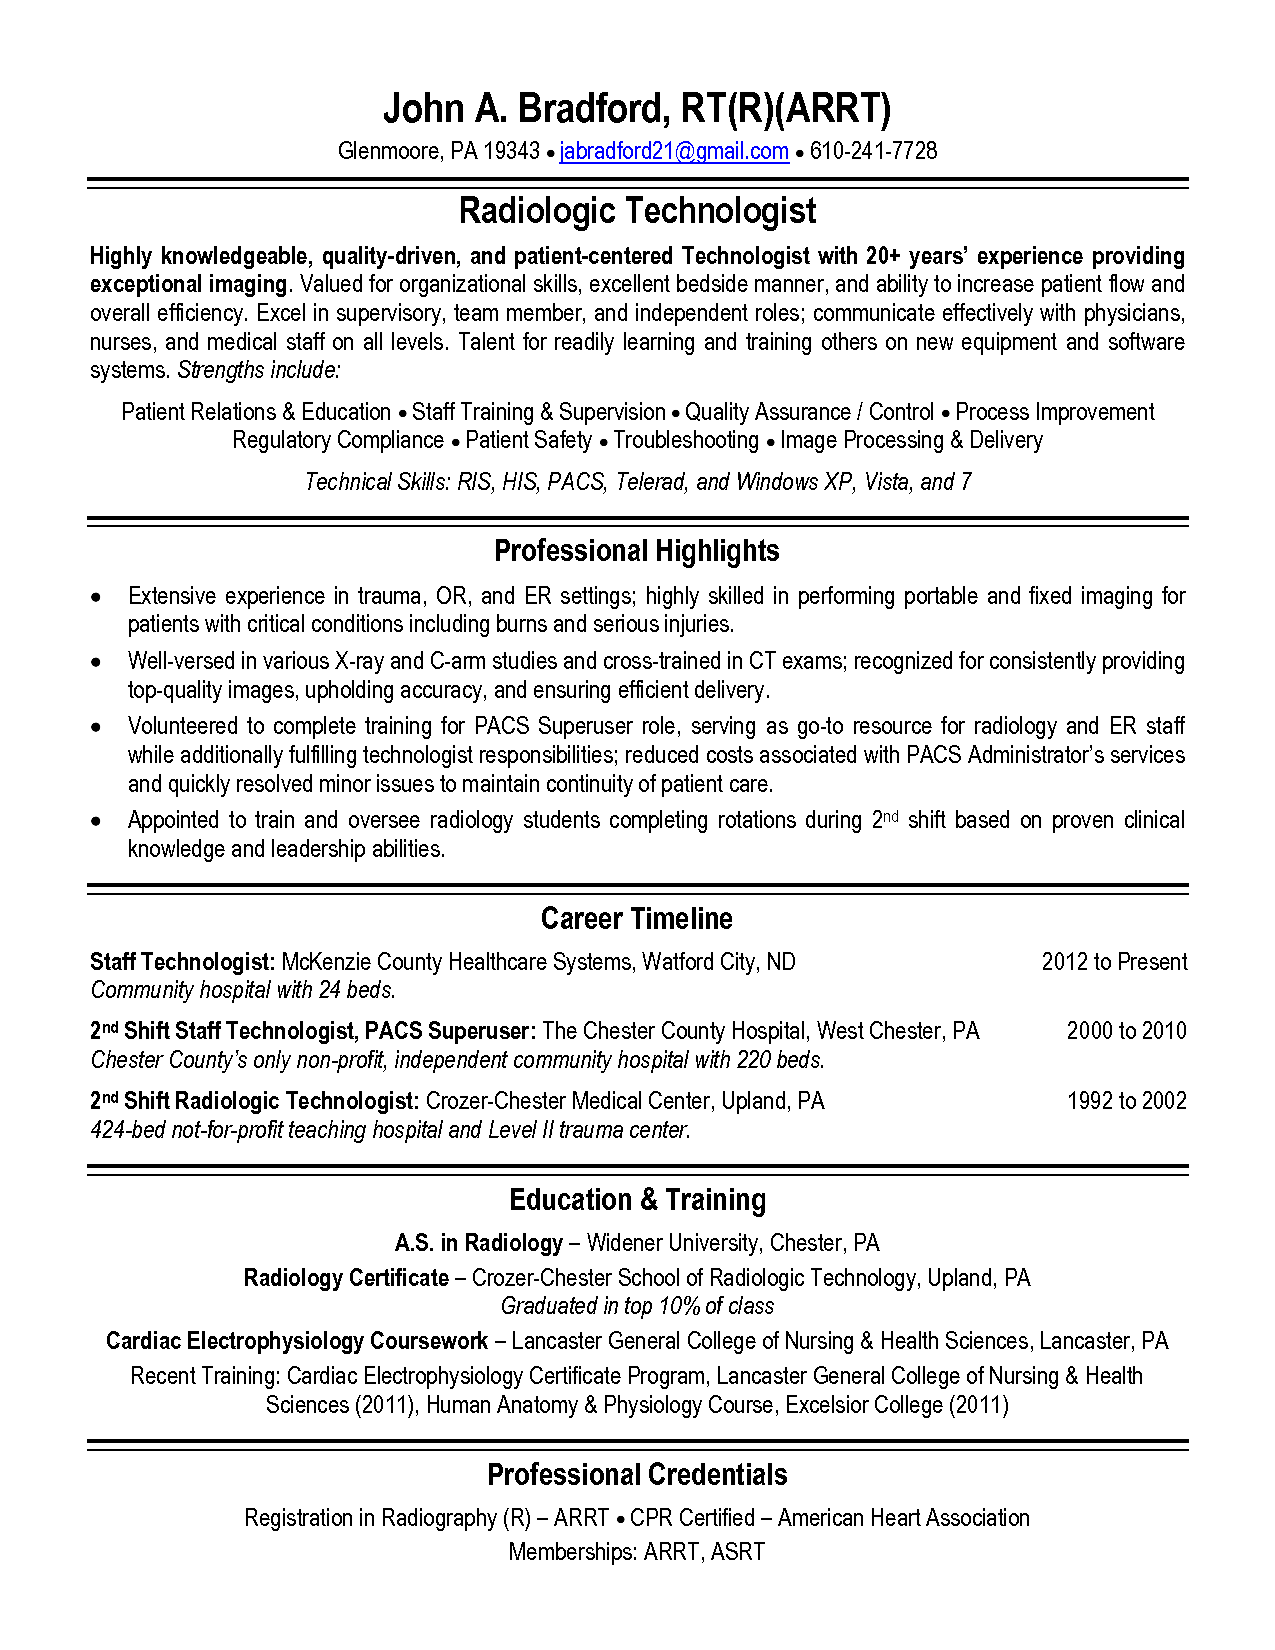 X Ray Technologist Resume Examples Resume Templates Radiology Technologist Professional Resume Examples Resume Skills